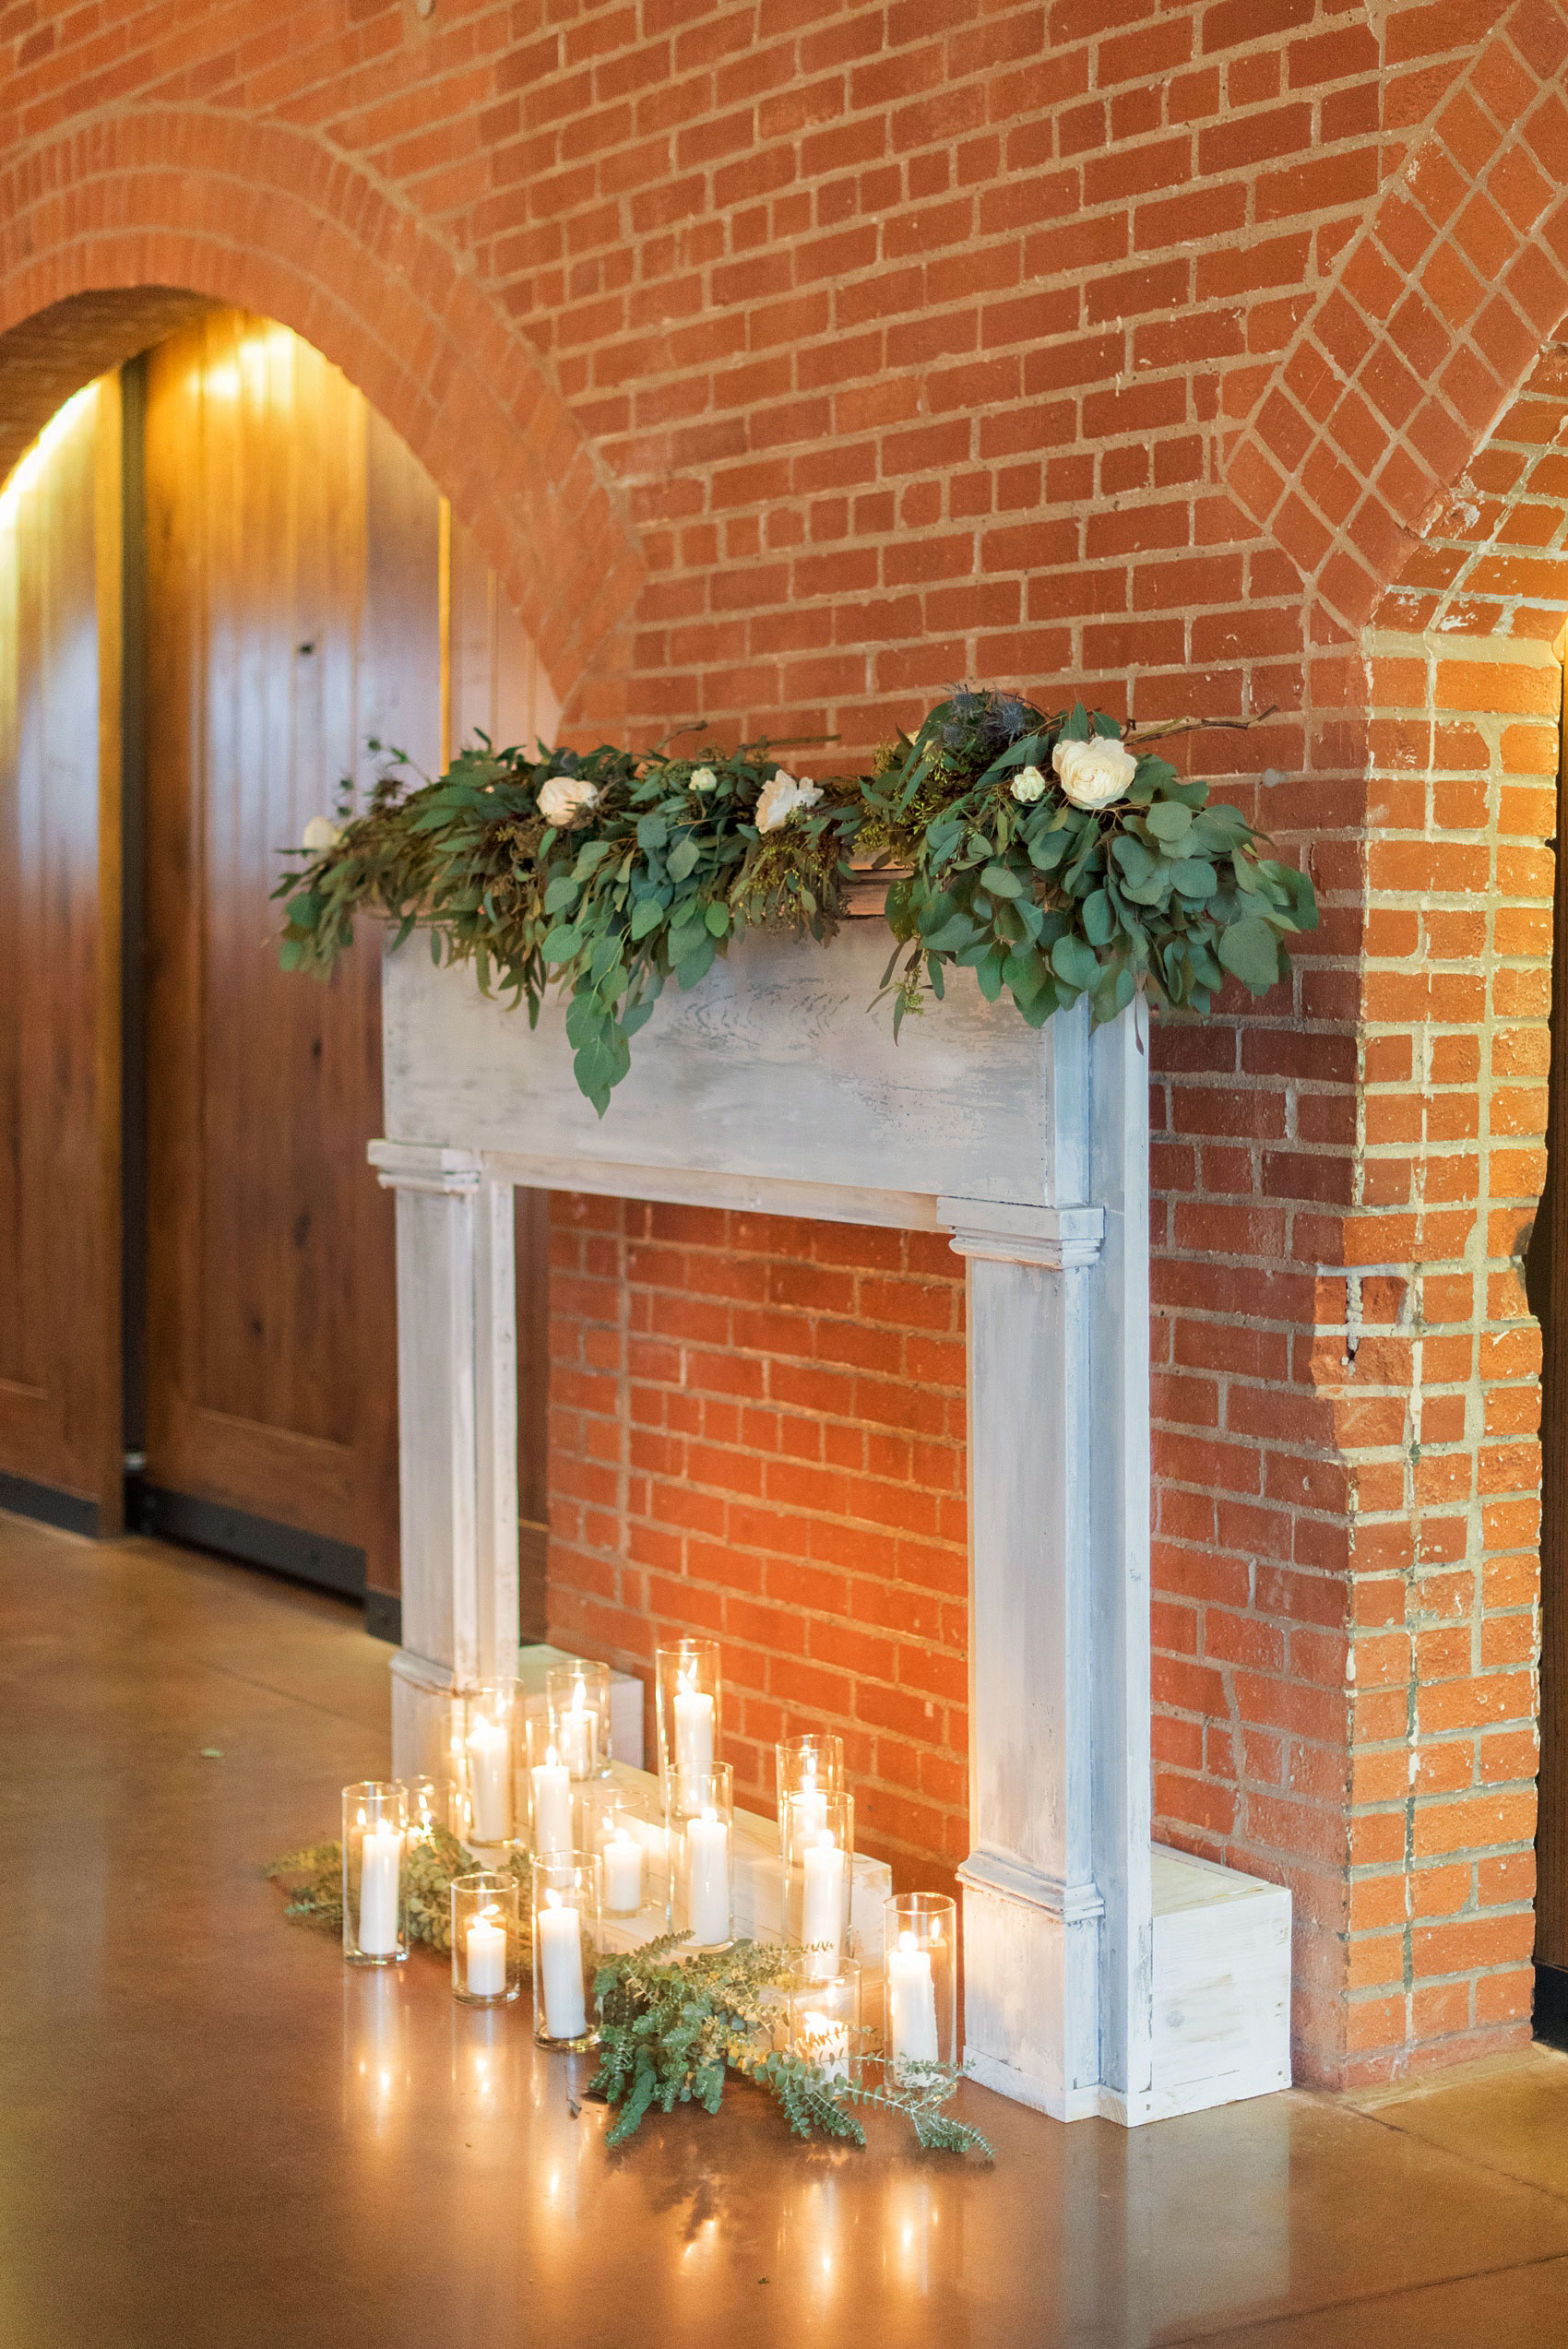 Durham wedding photos at The Cookery by Mikkel Paige Photography in North Carolina. The bride's father created this faux fireplace, decorated with lots of candlelight and green garland and white roses. It also served as the indoor ceremony backdrop.